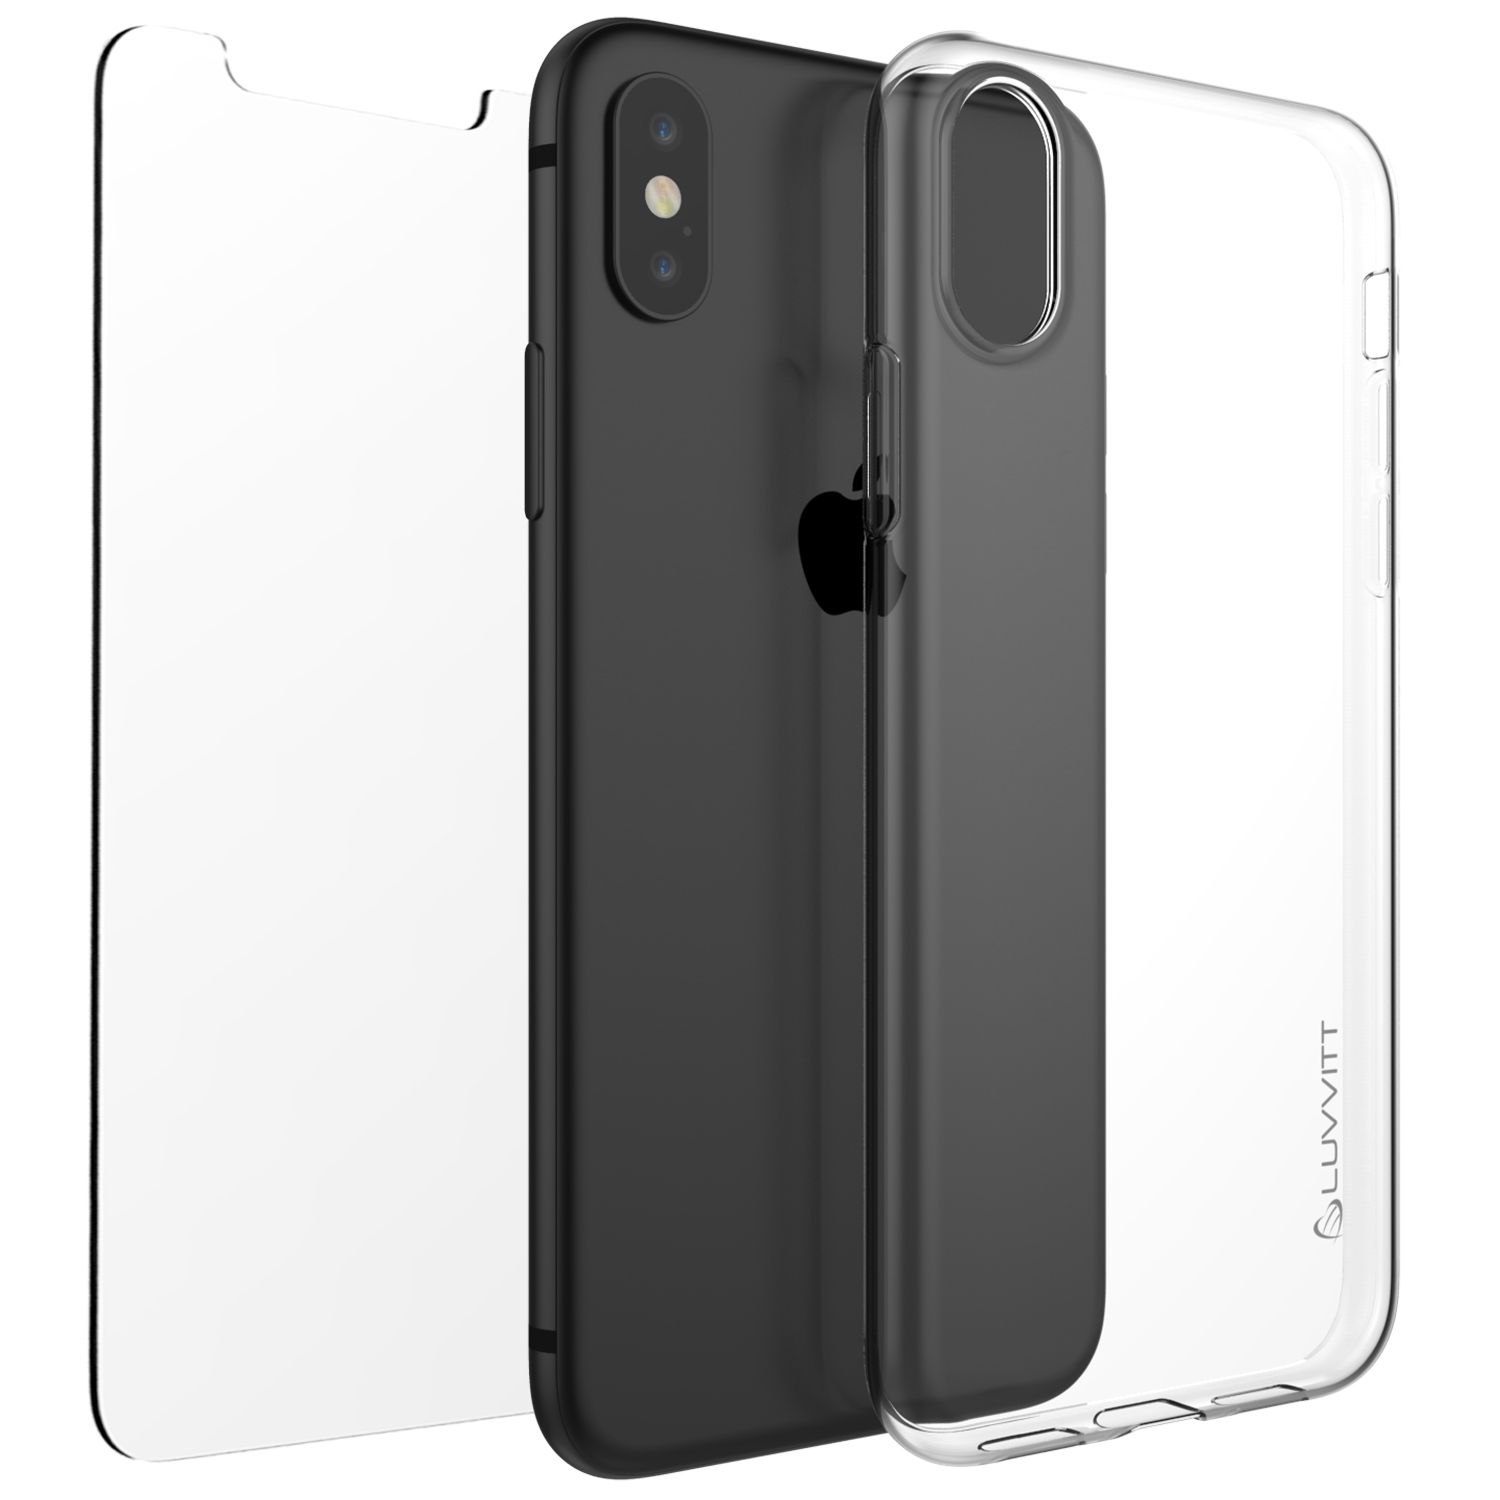 watch 5fe9a b61b3 Details about Luvvitt Clarity Case for iPhone XS / X Slim Flexible TPU  Rubber Light Cover